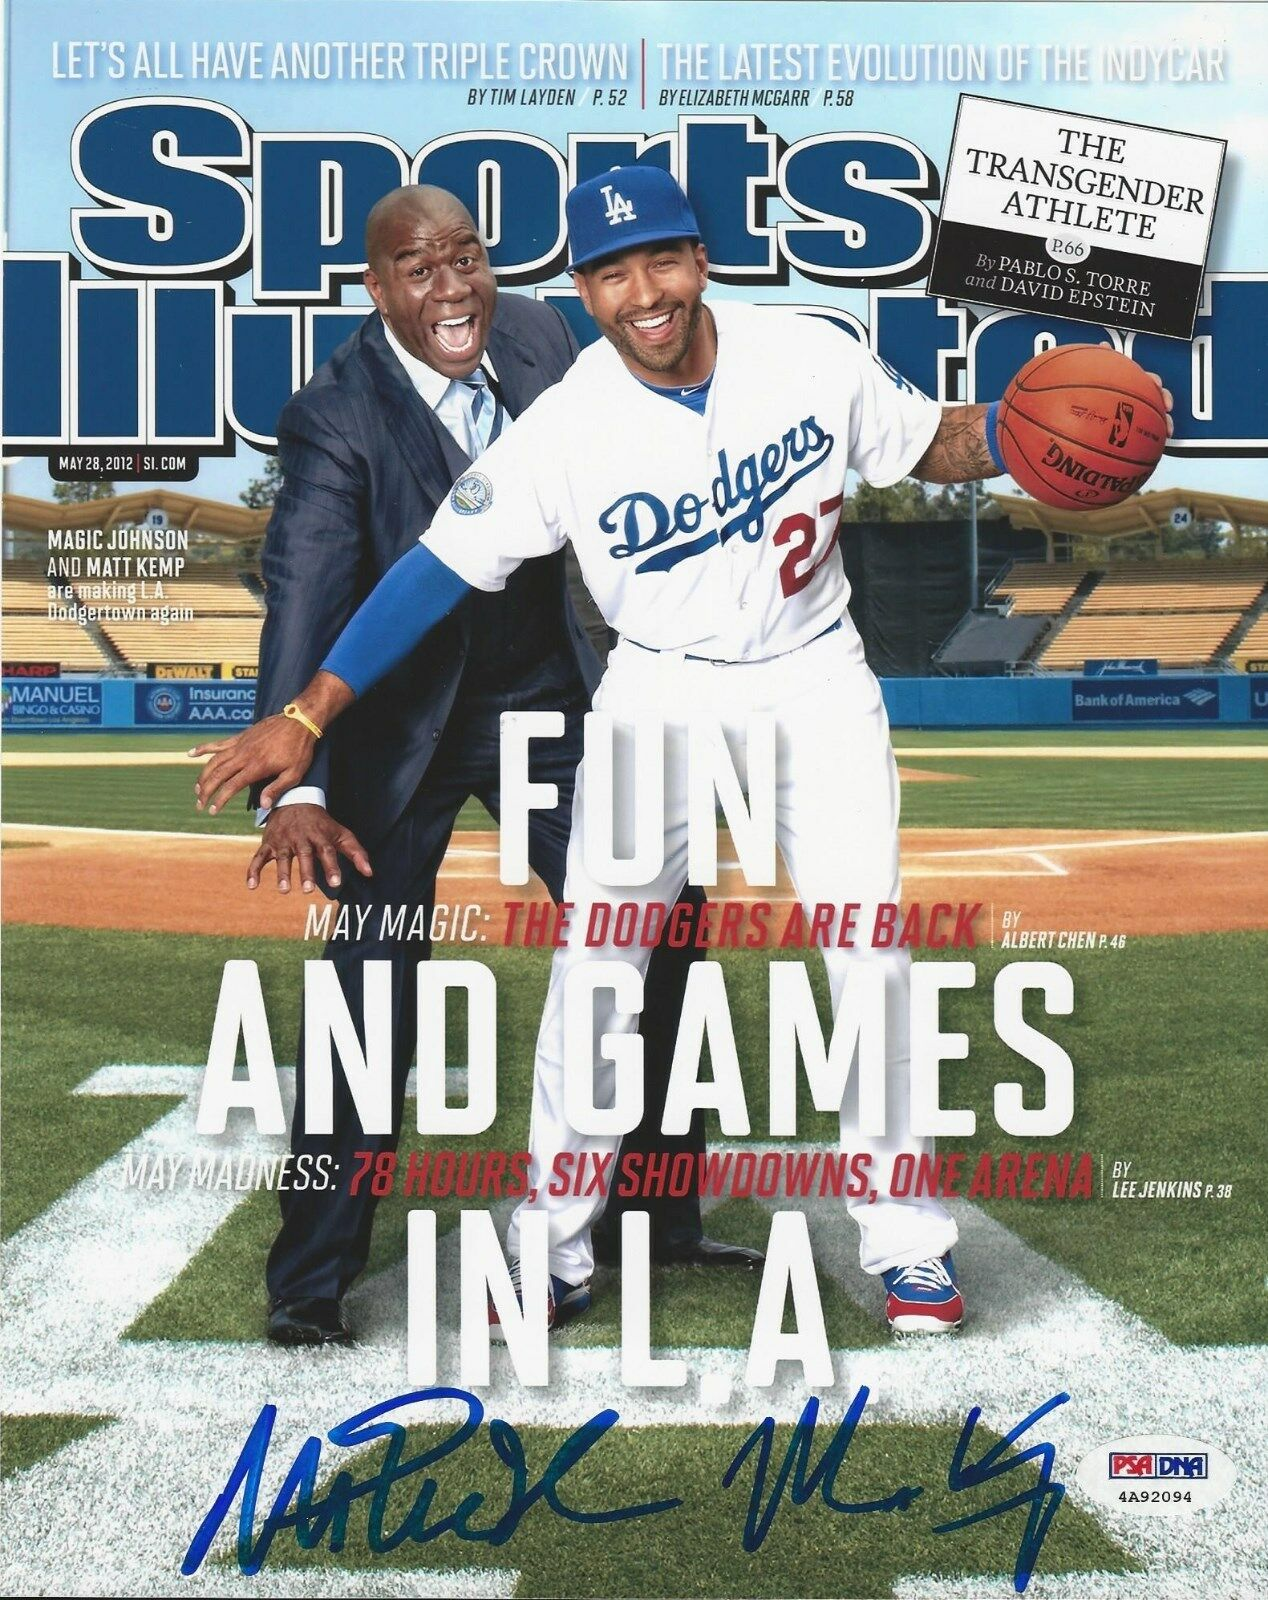 Matt Kemp and Magic Los Angeles Dodgers signed 8x10 photo PSA/DNA # 4A92094